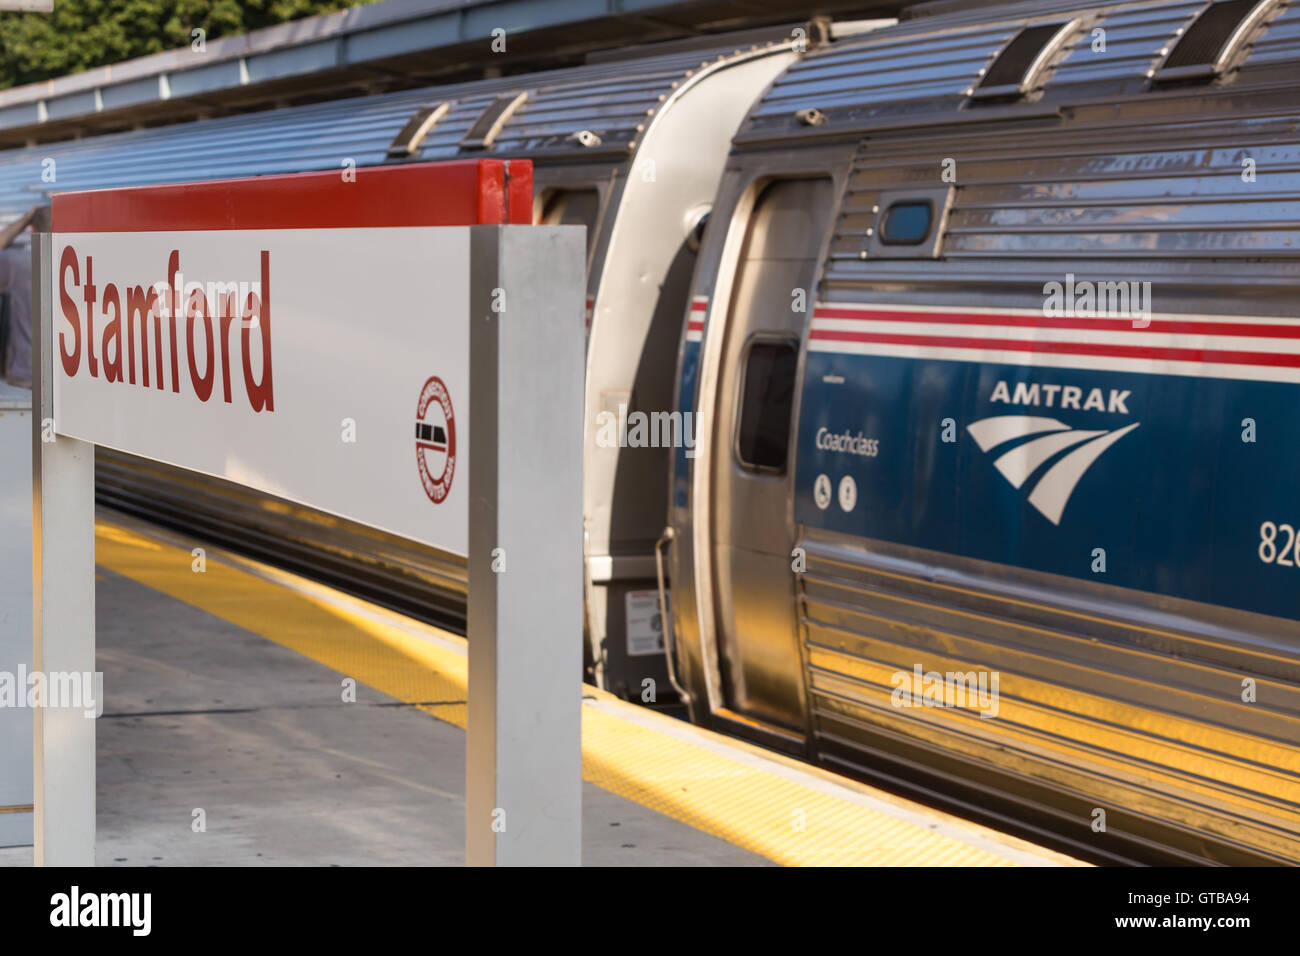 A northbound Amtrak Northeast Regional train picks up speed as it departs from Stamford Station in Stamford, Connecticut. - Stock Image